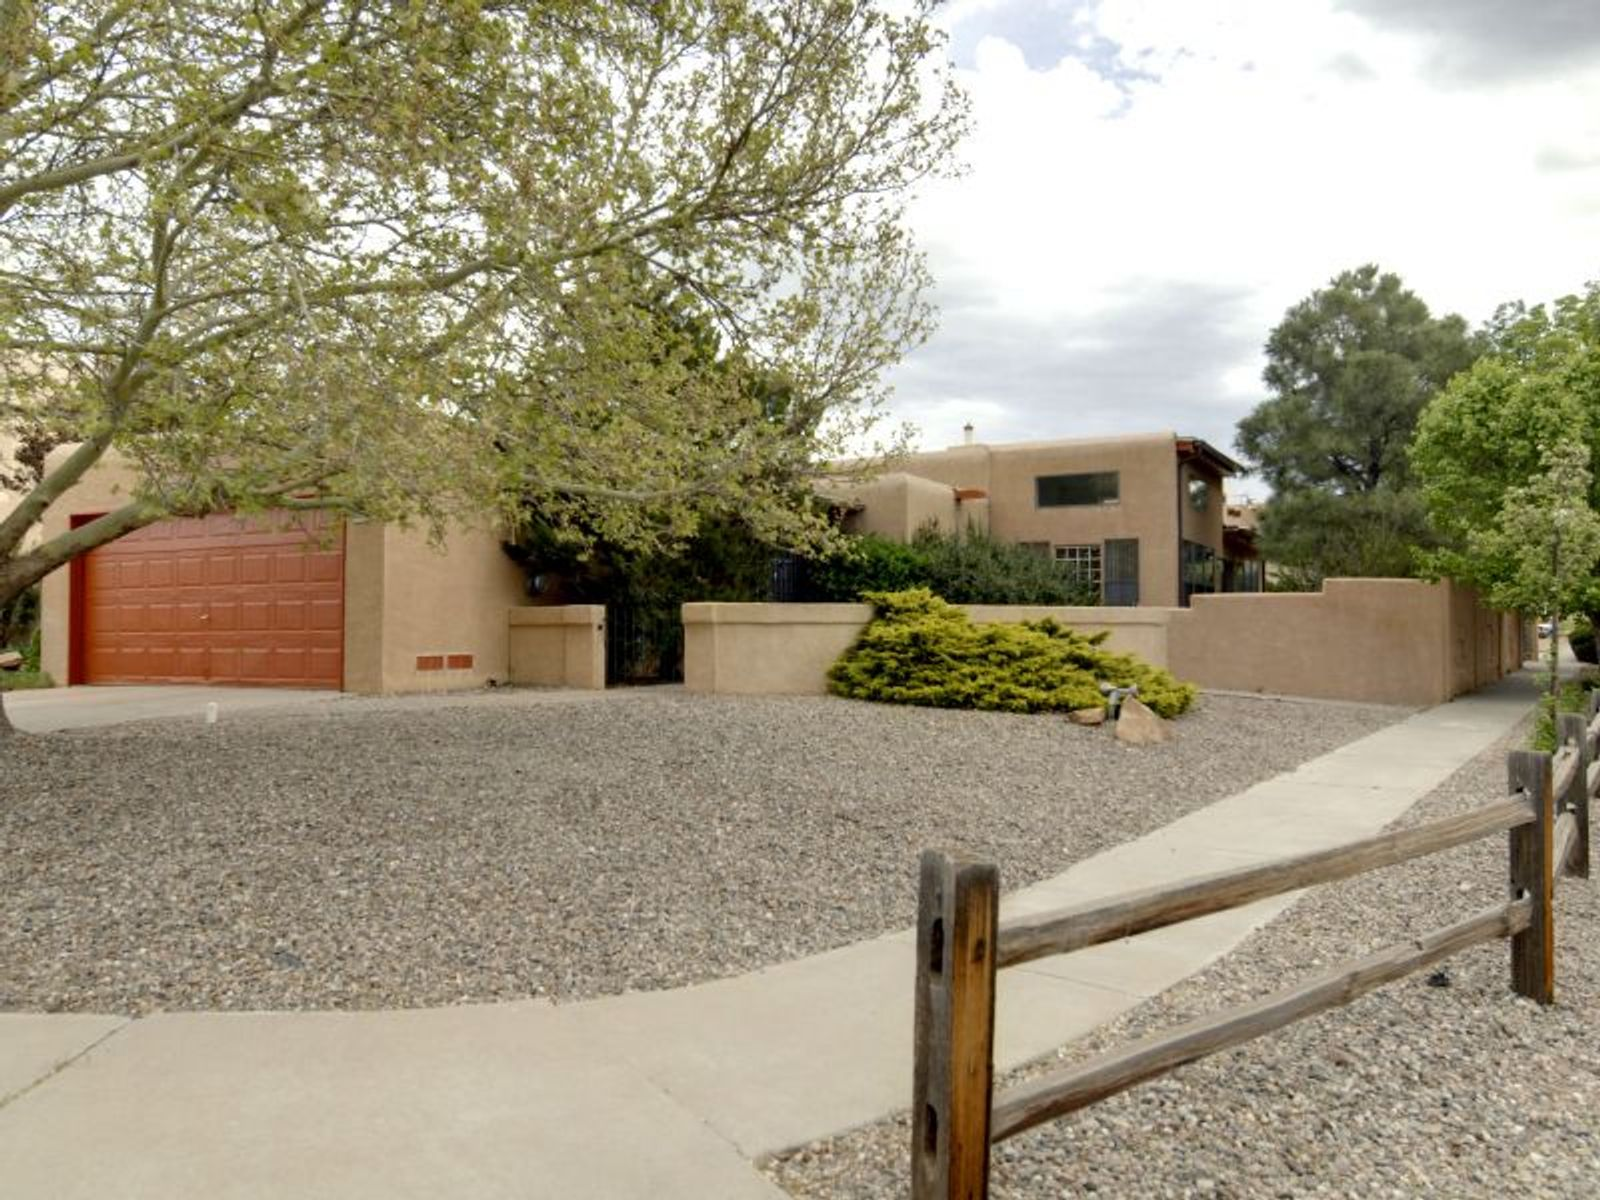 2953  Calle de Ovejas, Santa Fe NM Single Family Home - Santa Fe Real Estate